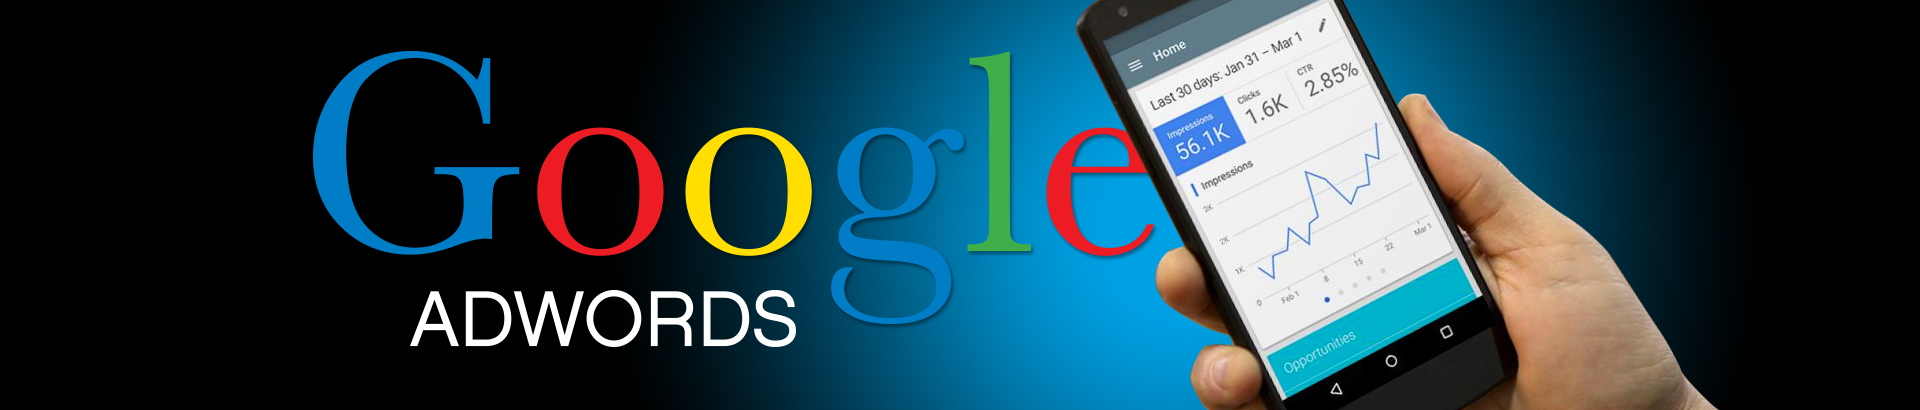 google adwords sydney web design